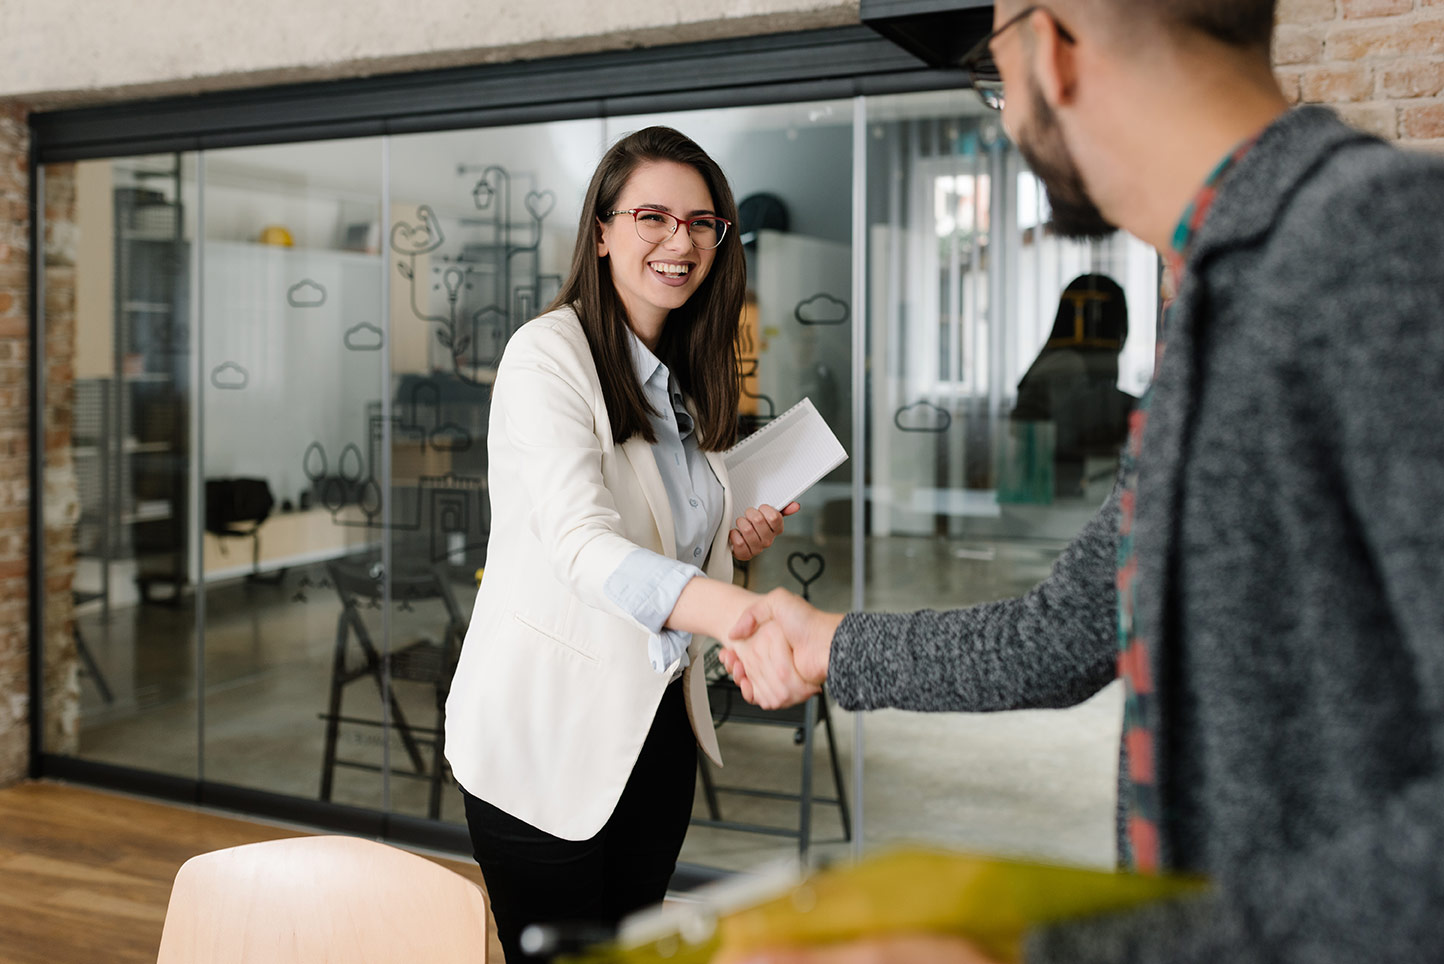 The Benefits of Hiring an Outsourced Recruiting Team | Pivotal Talent Search